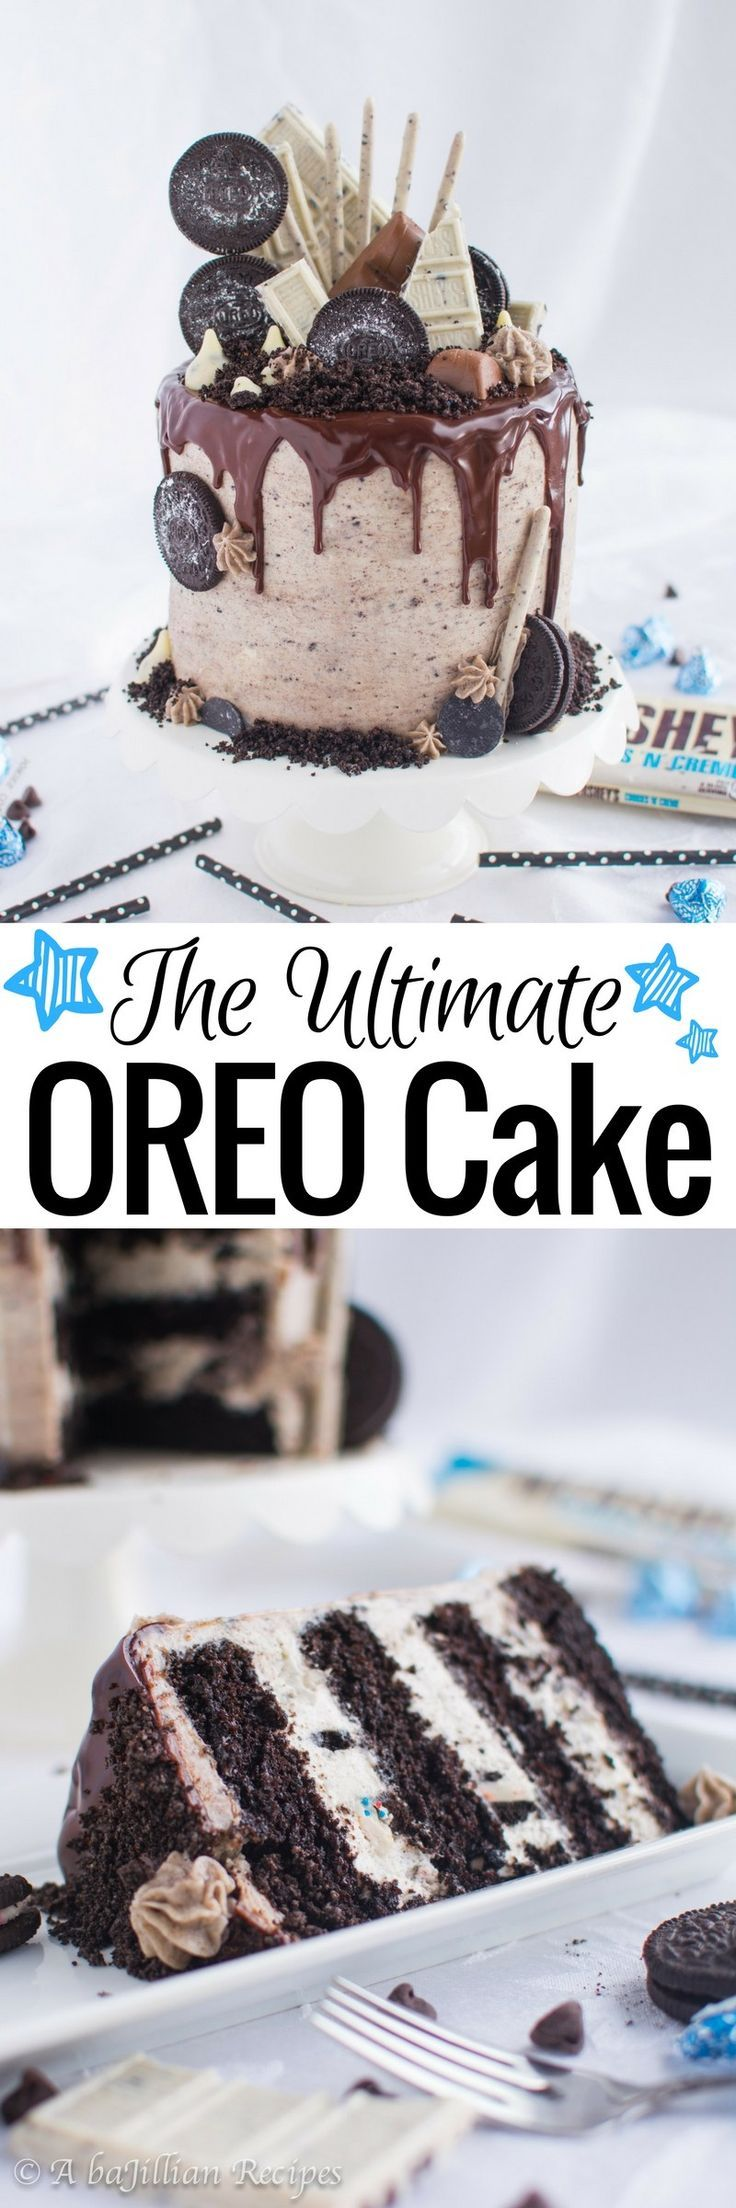 Oreo Cake | A baJillian Recipes - Moist layers of Oreo-infused chocolate cake filled with fluffy cookies n' creme mousse and frosted in creamy Oreo buttercream! Triple the Oreo, triple the deliciousness!